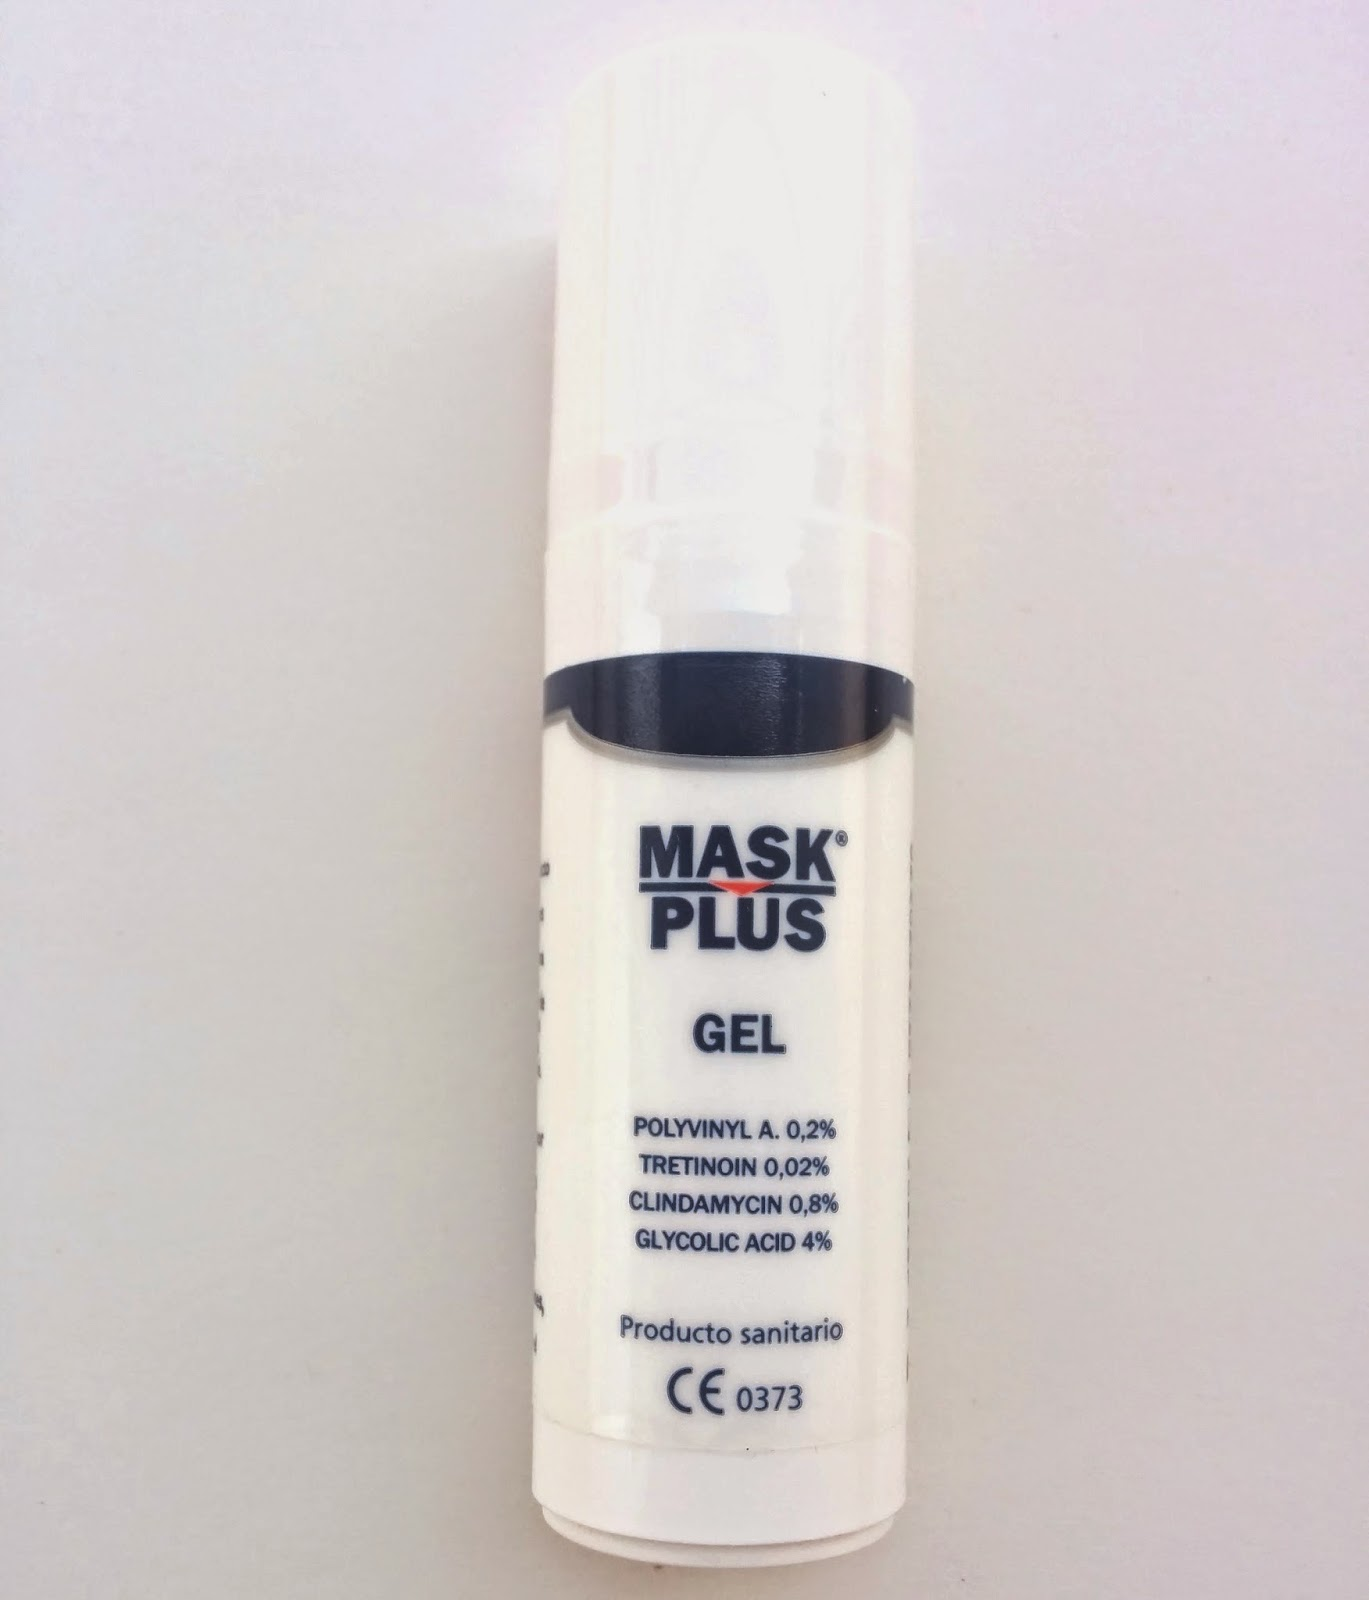 mask plus gel - laboratorio BrillPharma